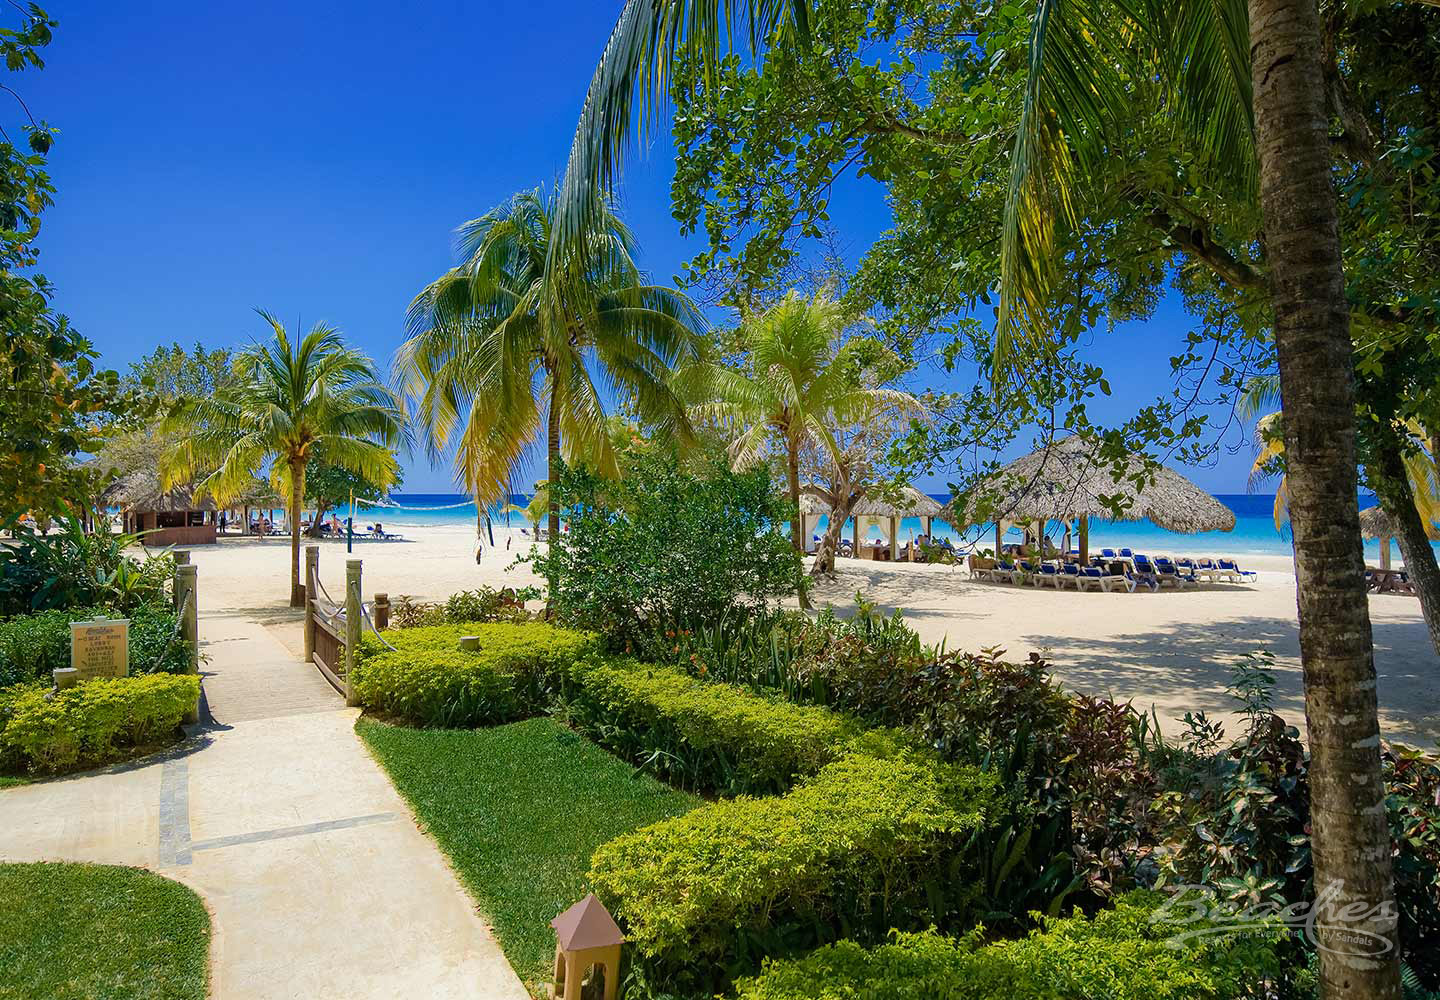 Travel Agency All-Inclusive Resort Beaches Negril 074